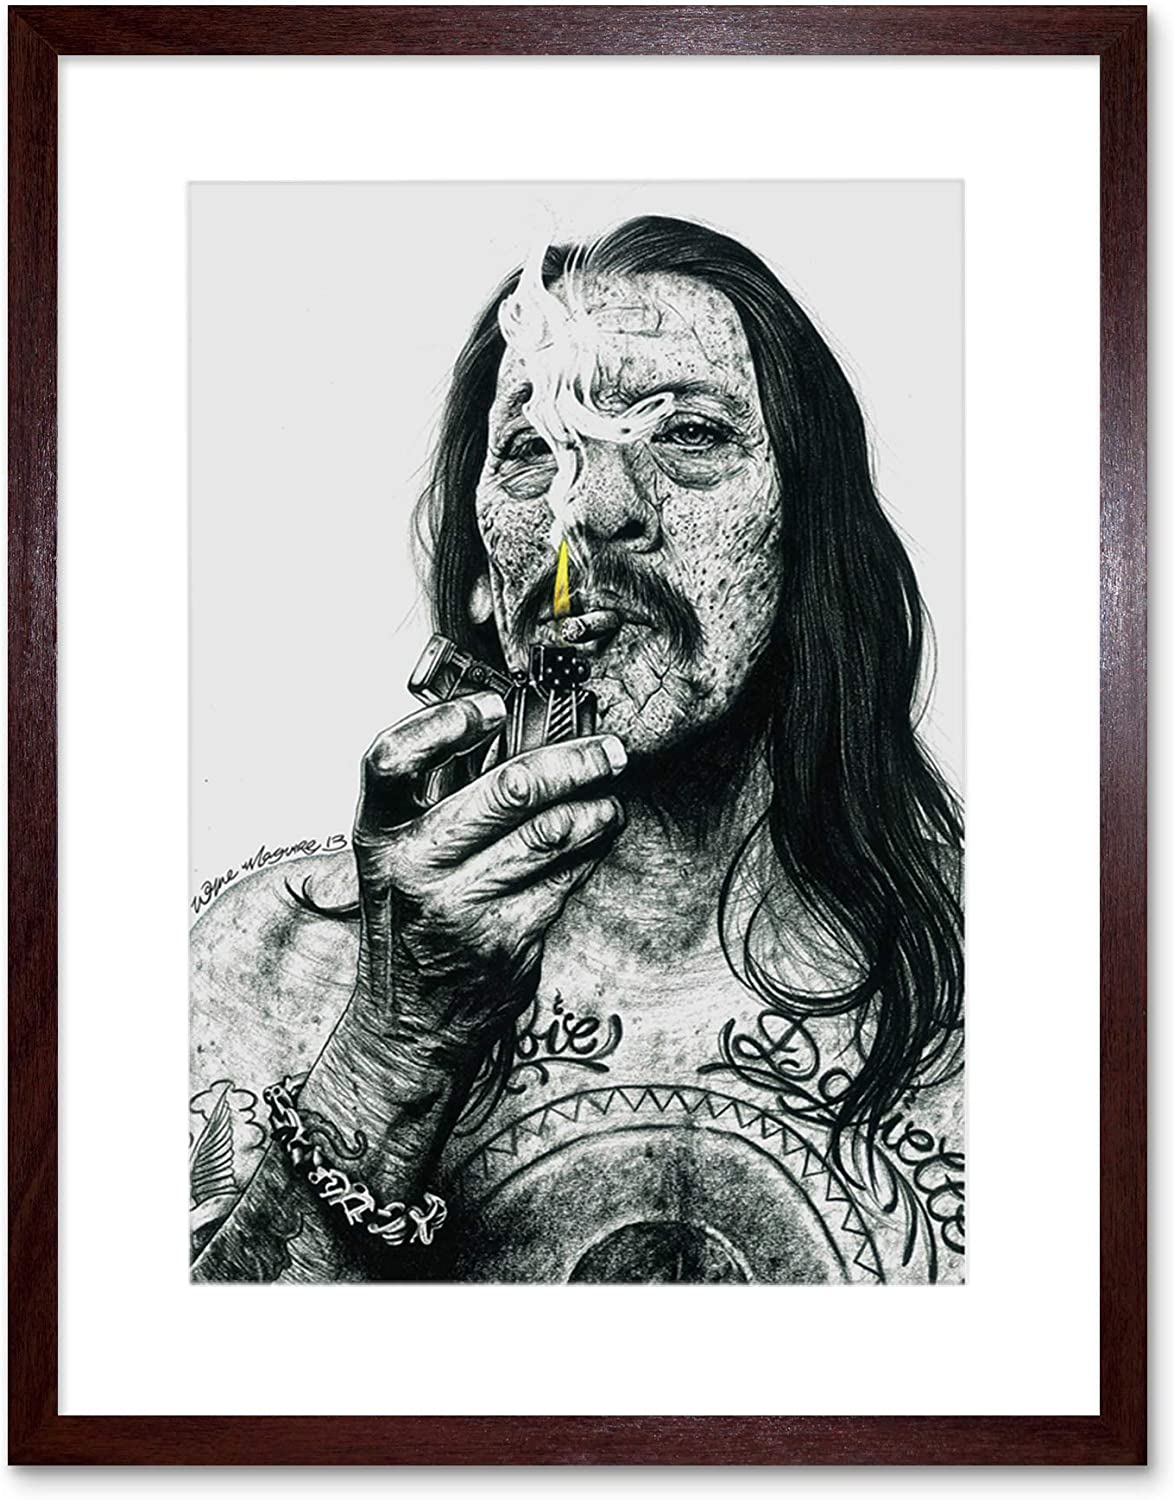 DANNY TREJO INKED IKONS  FRAMED ART PRINT BY W.MAGUIRE F12X10618